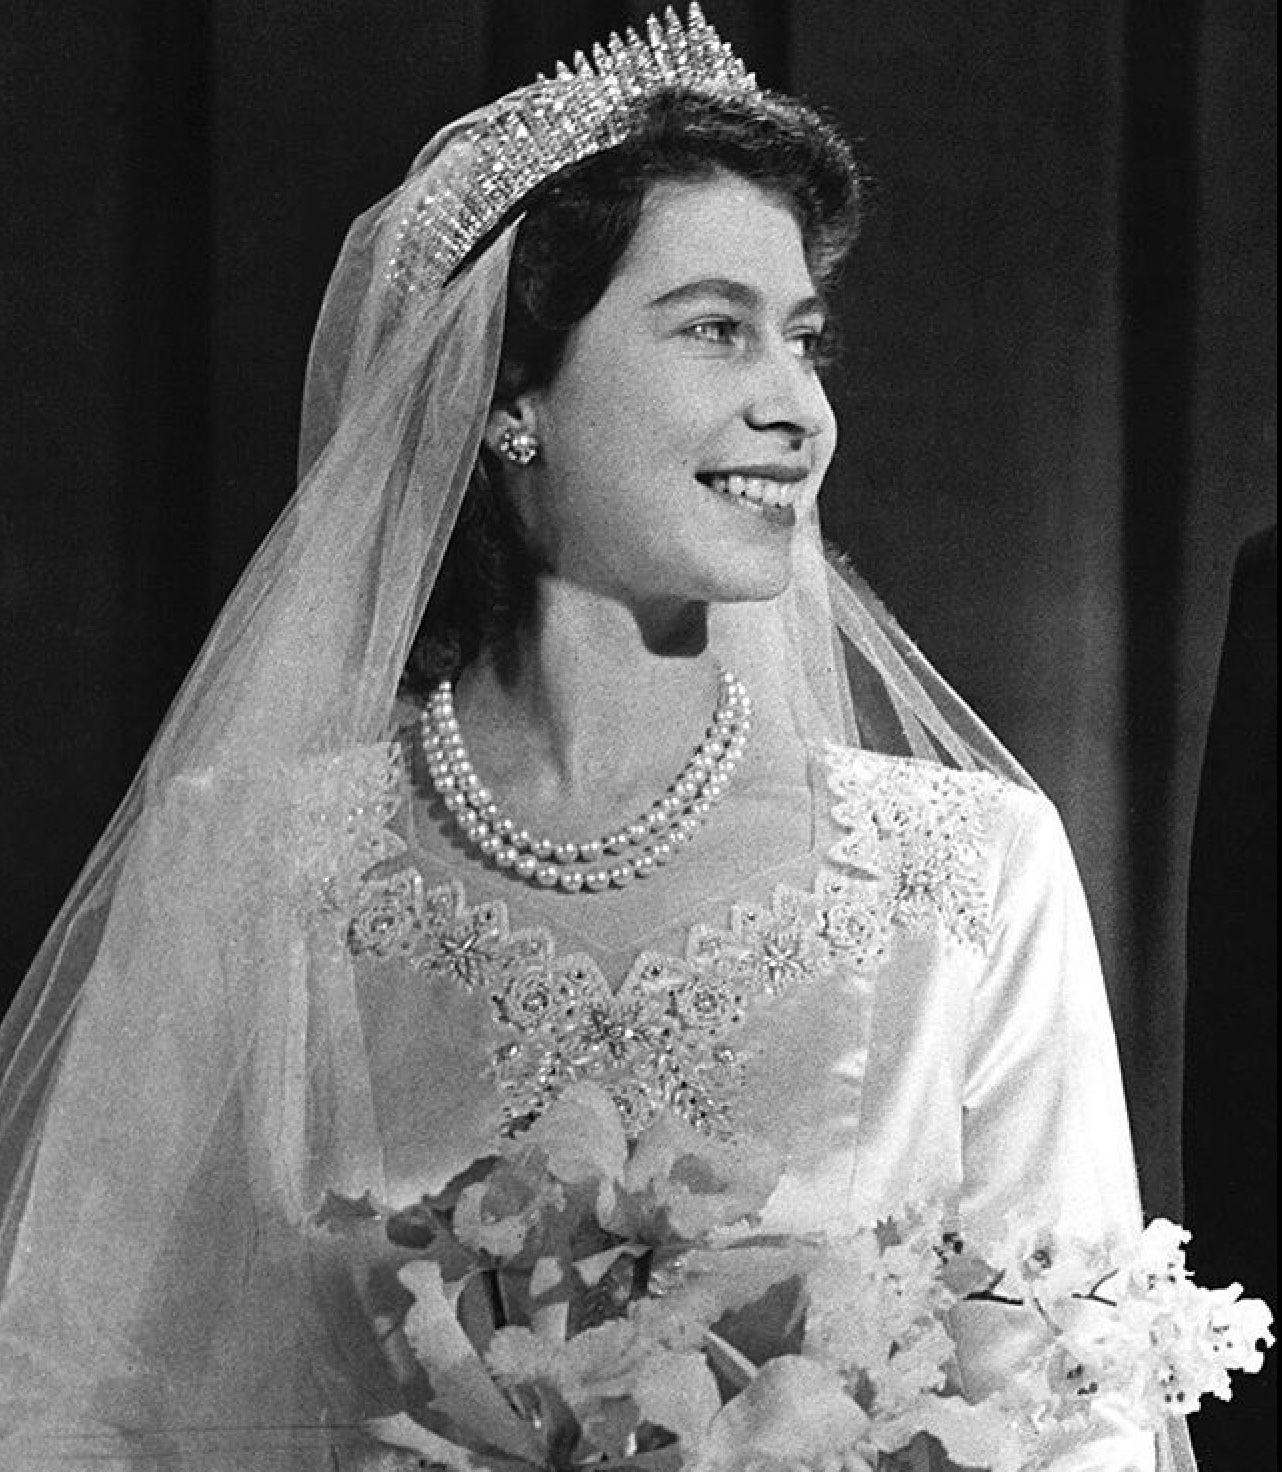 Known as the Queen Mum, Queen Elizabeth was married to the